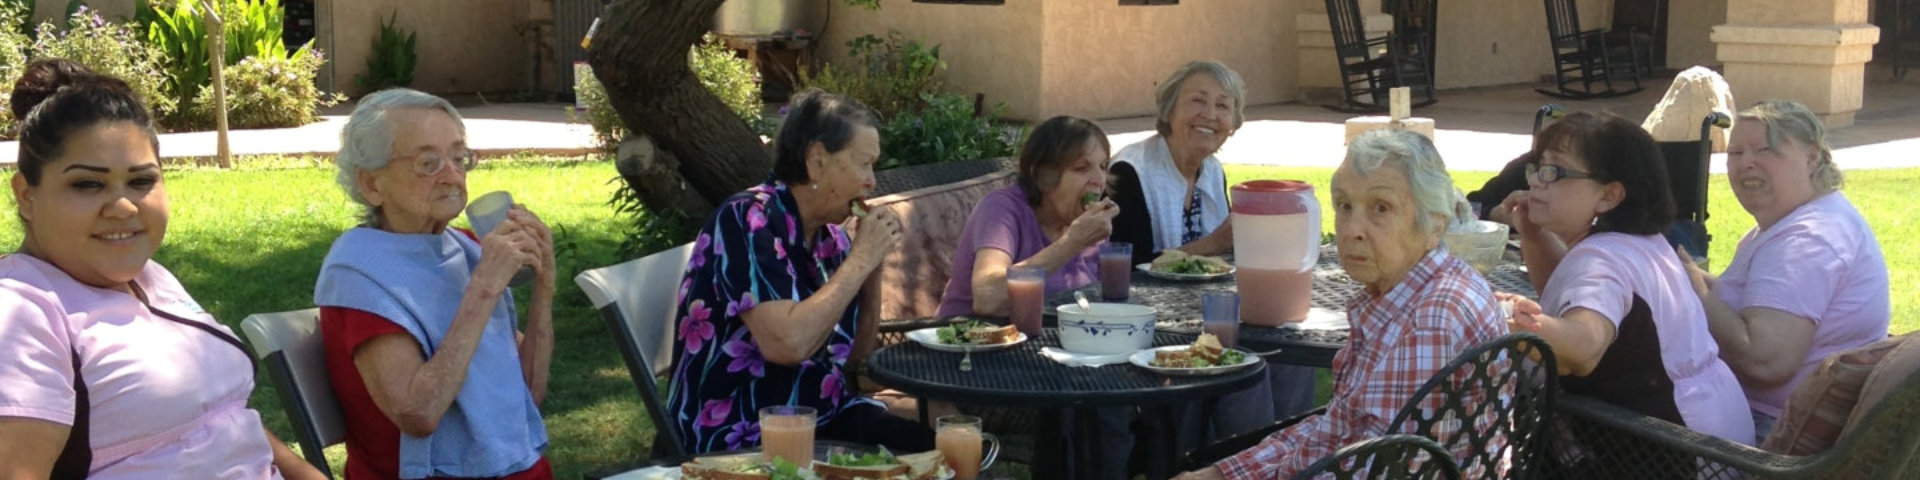 elderly ladies eating outdoors